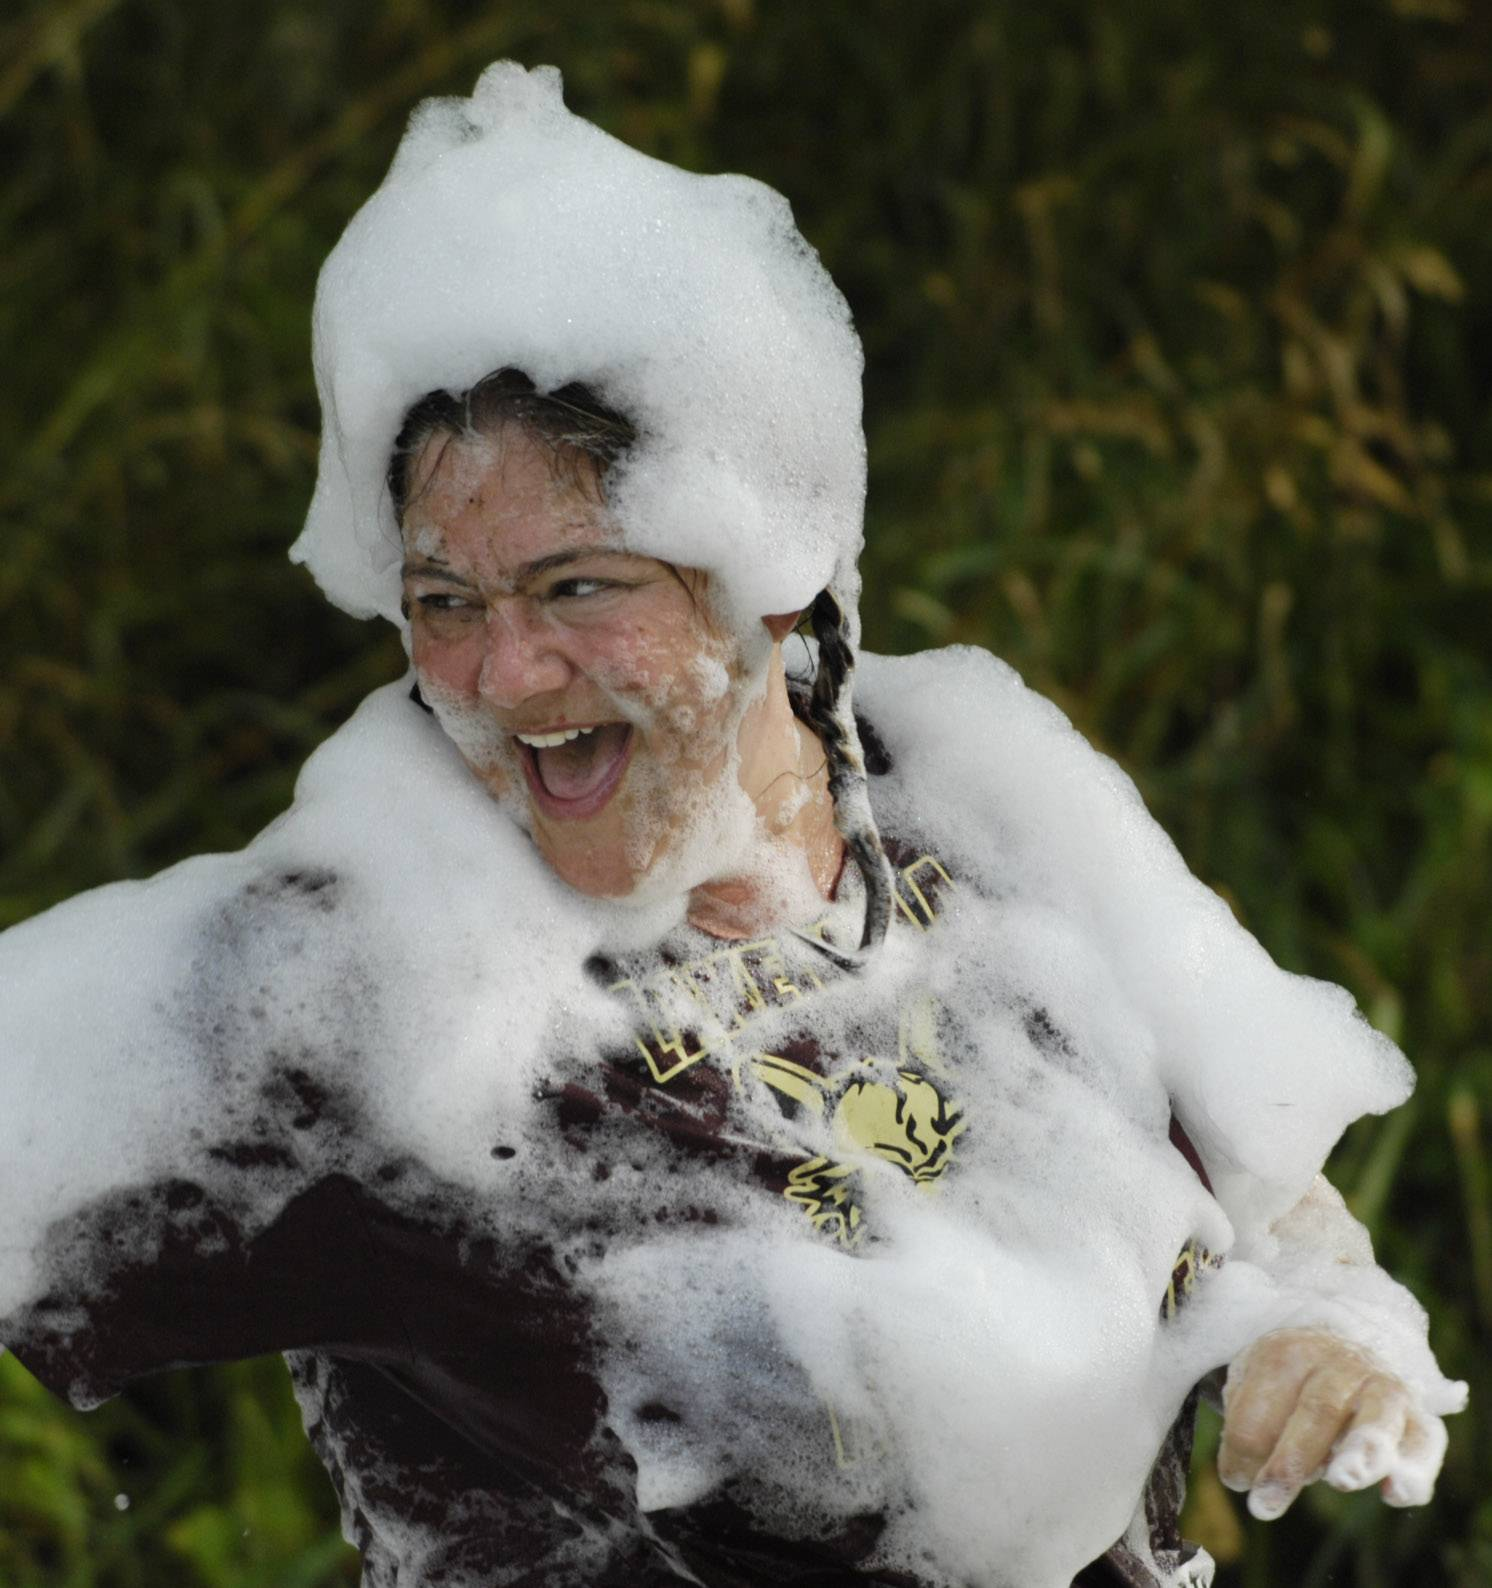 Lisa Kozanecki of Lake Villa laughs as she finishes Saturday's Mud Run at Caboose Park in Lake Villa.